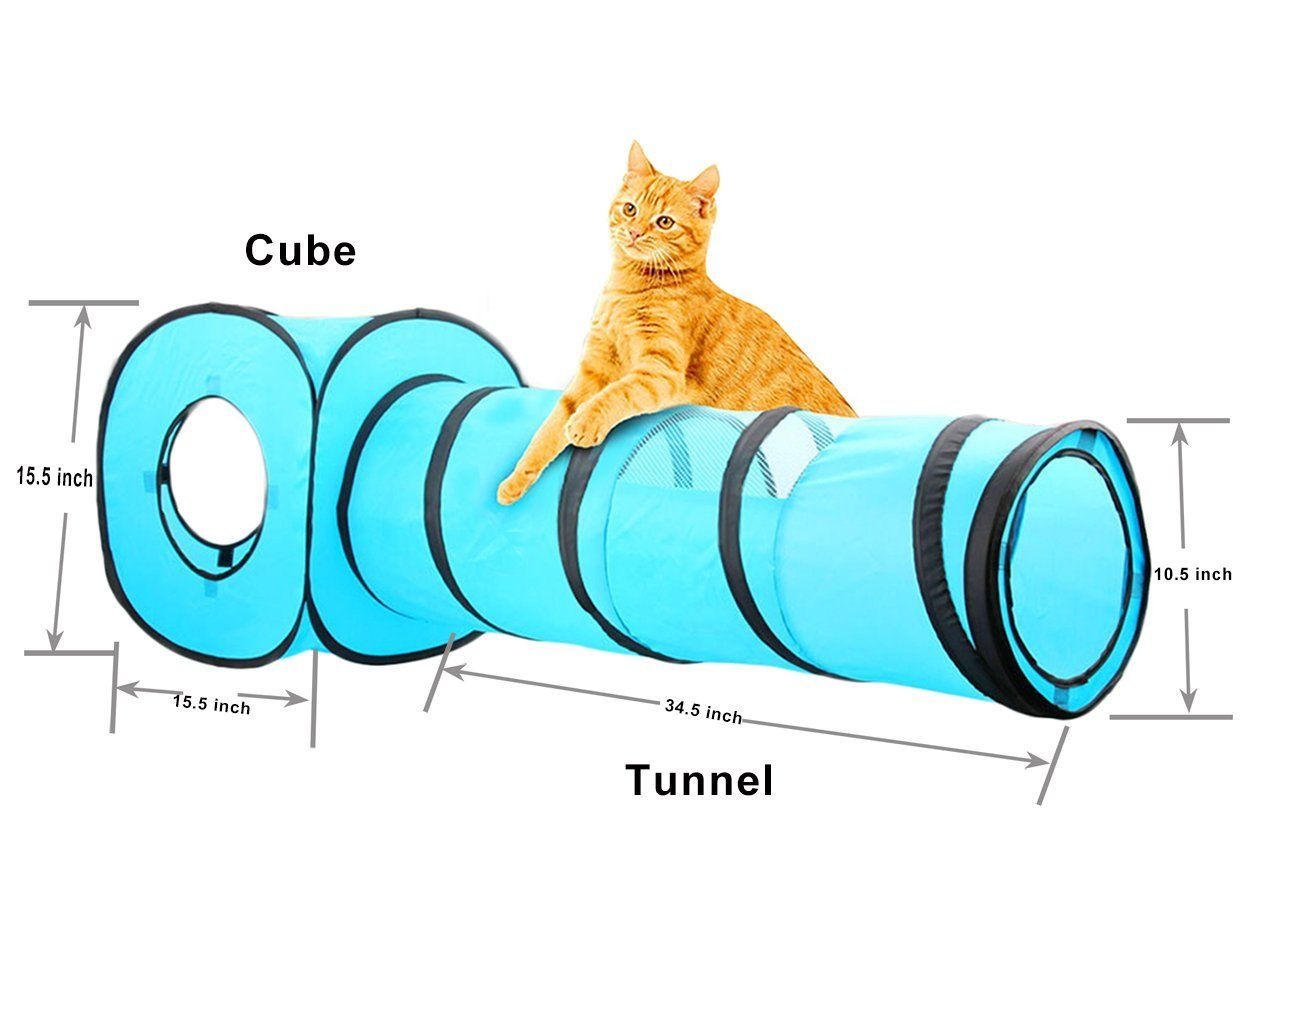 Cat Toys Best Pawise Cat Toys Cat Tunnel Pop Up Collapsible Cat Cube Kitten Indoor Outdoor Toys With Kitten Collar Read More Cat Cube Cat Tunnel Cat Toys